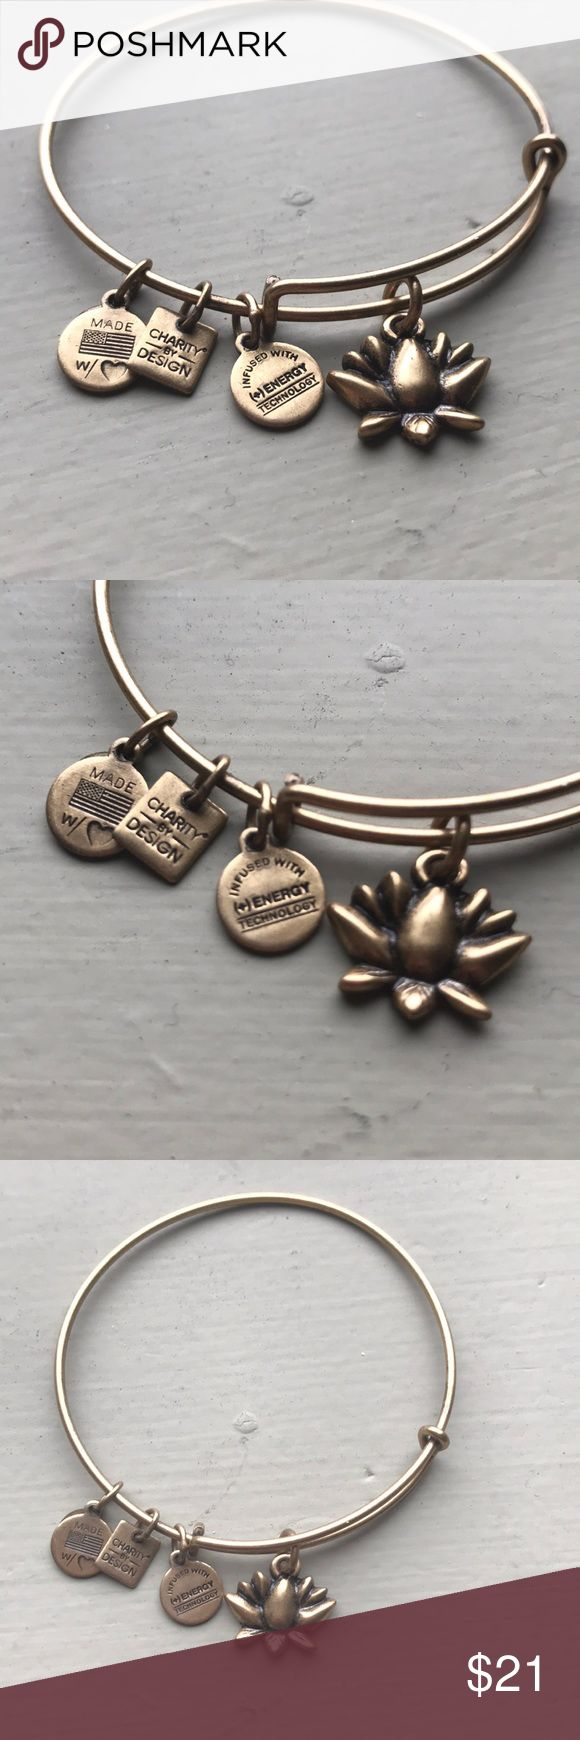 "NEW ""Lotus Blossom Charm Bangle"" Alex and Ani  This bracelet is in great condition and has never been worn!  Selling for 25% off retail price ✨ Alex & Ani Jewelry Bracelets"